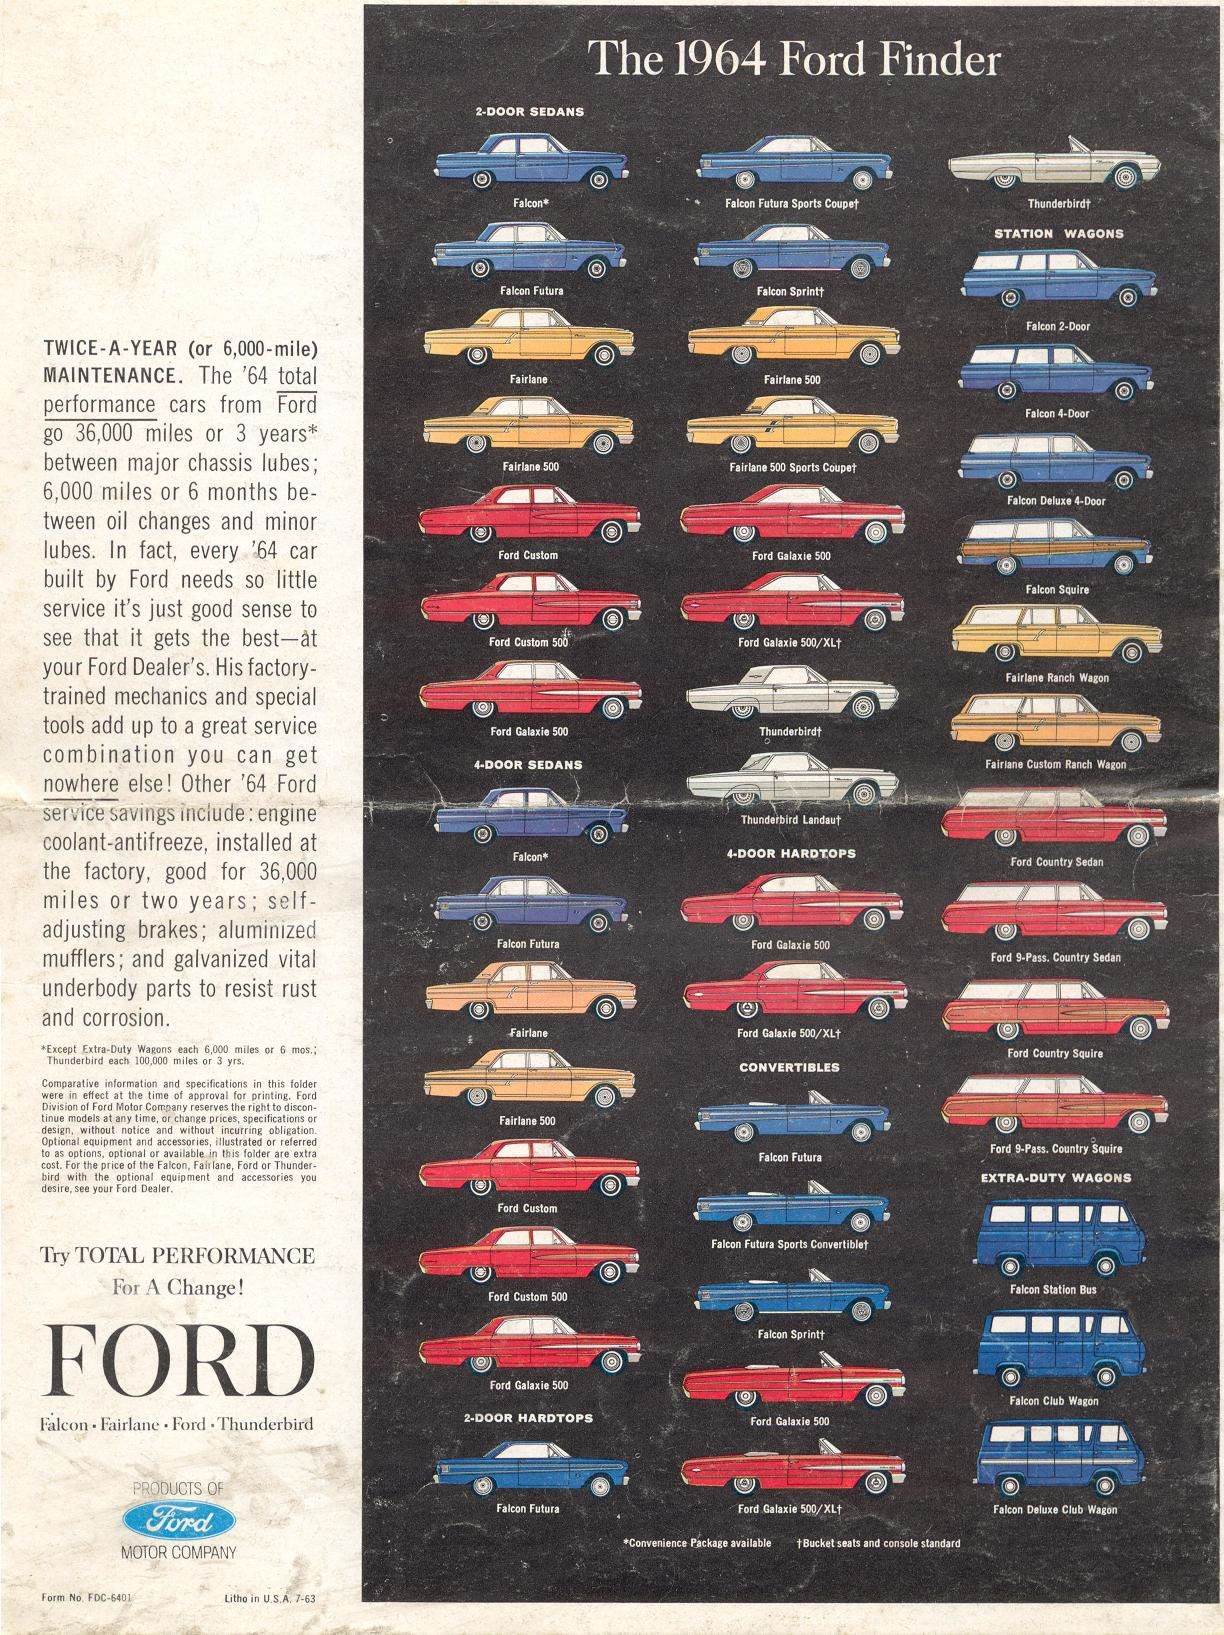 Pin By Anna Rose On Cars Pinterest Brochures Ford And 1964 Fairlane Bucket Seats Research Over 500 Classic Then Search Listings For The Car Of Your Dreams Collector Sale From A Trusted Dealer Network